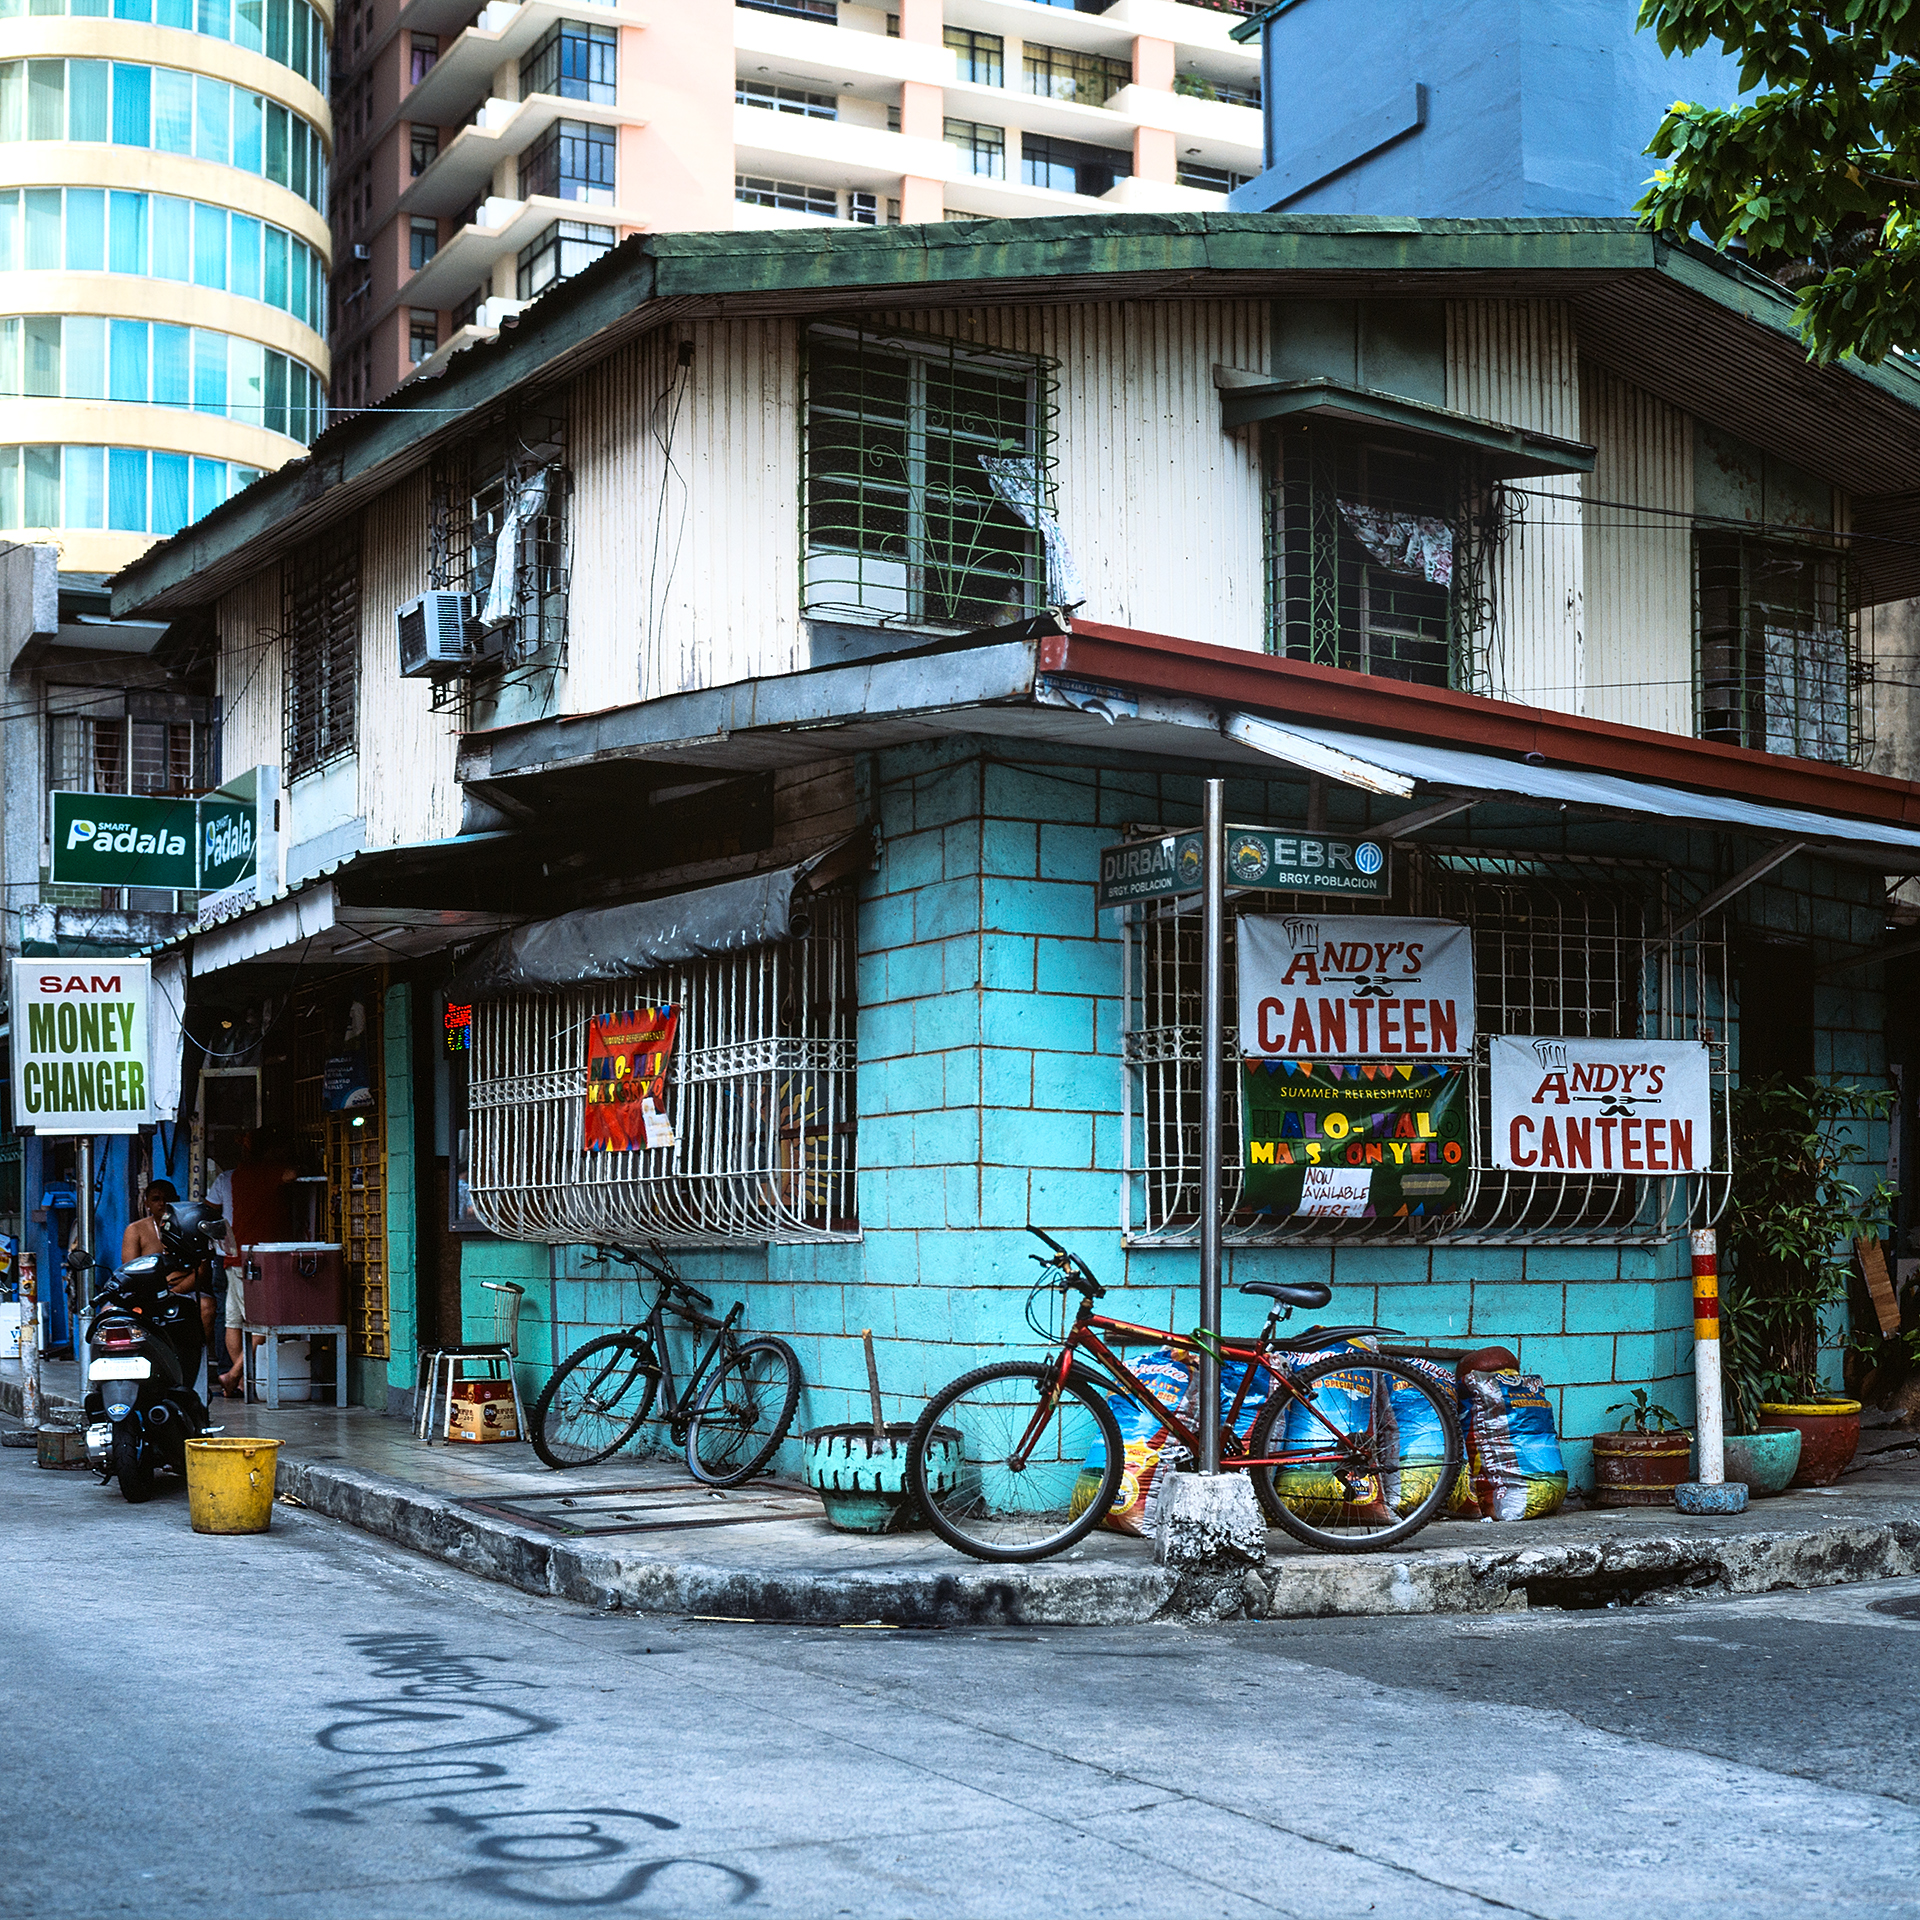 Brightly colored building of Andy's Canteen in Makati Manila in the Philippines.